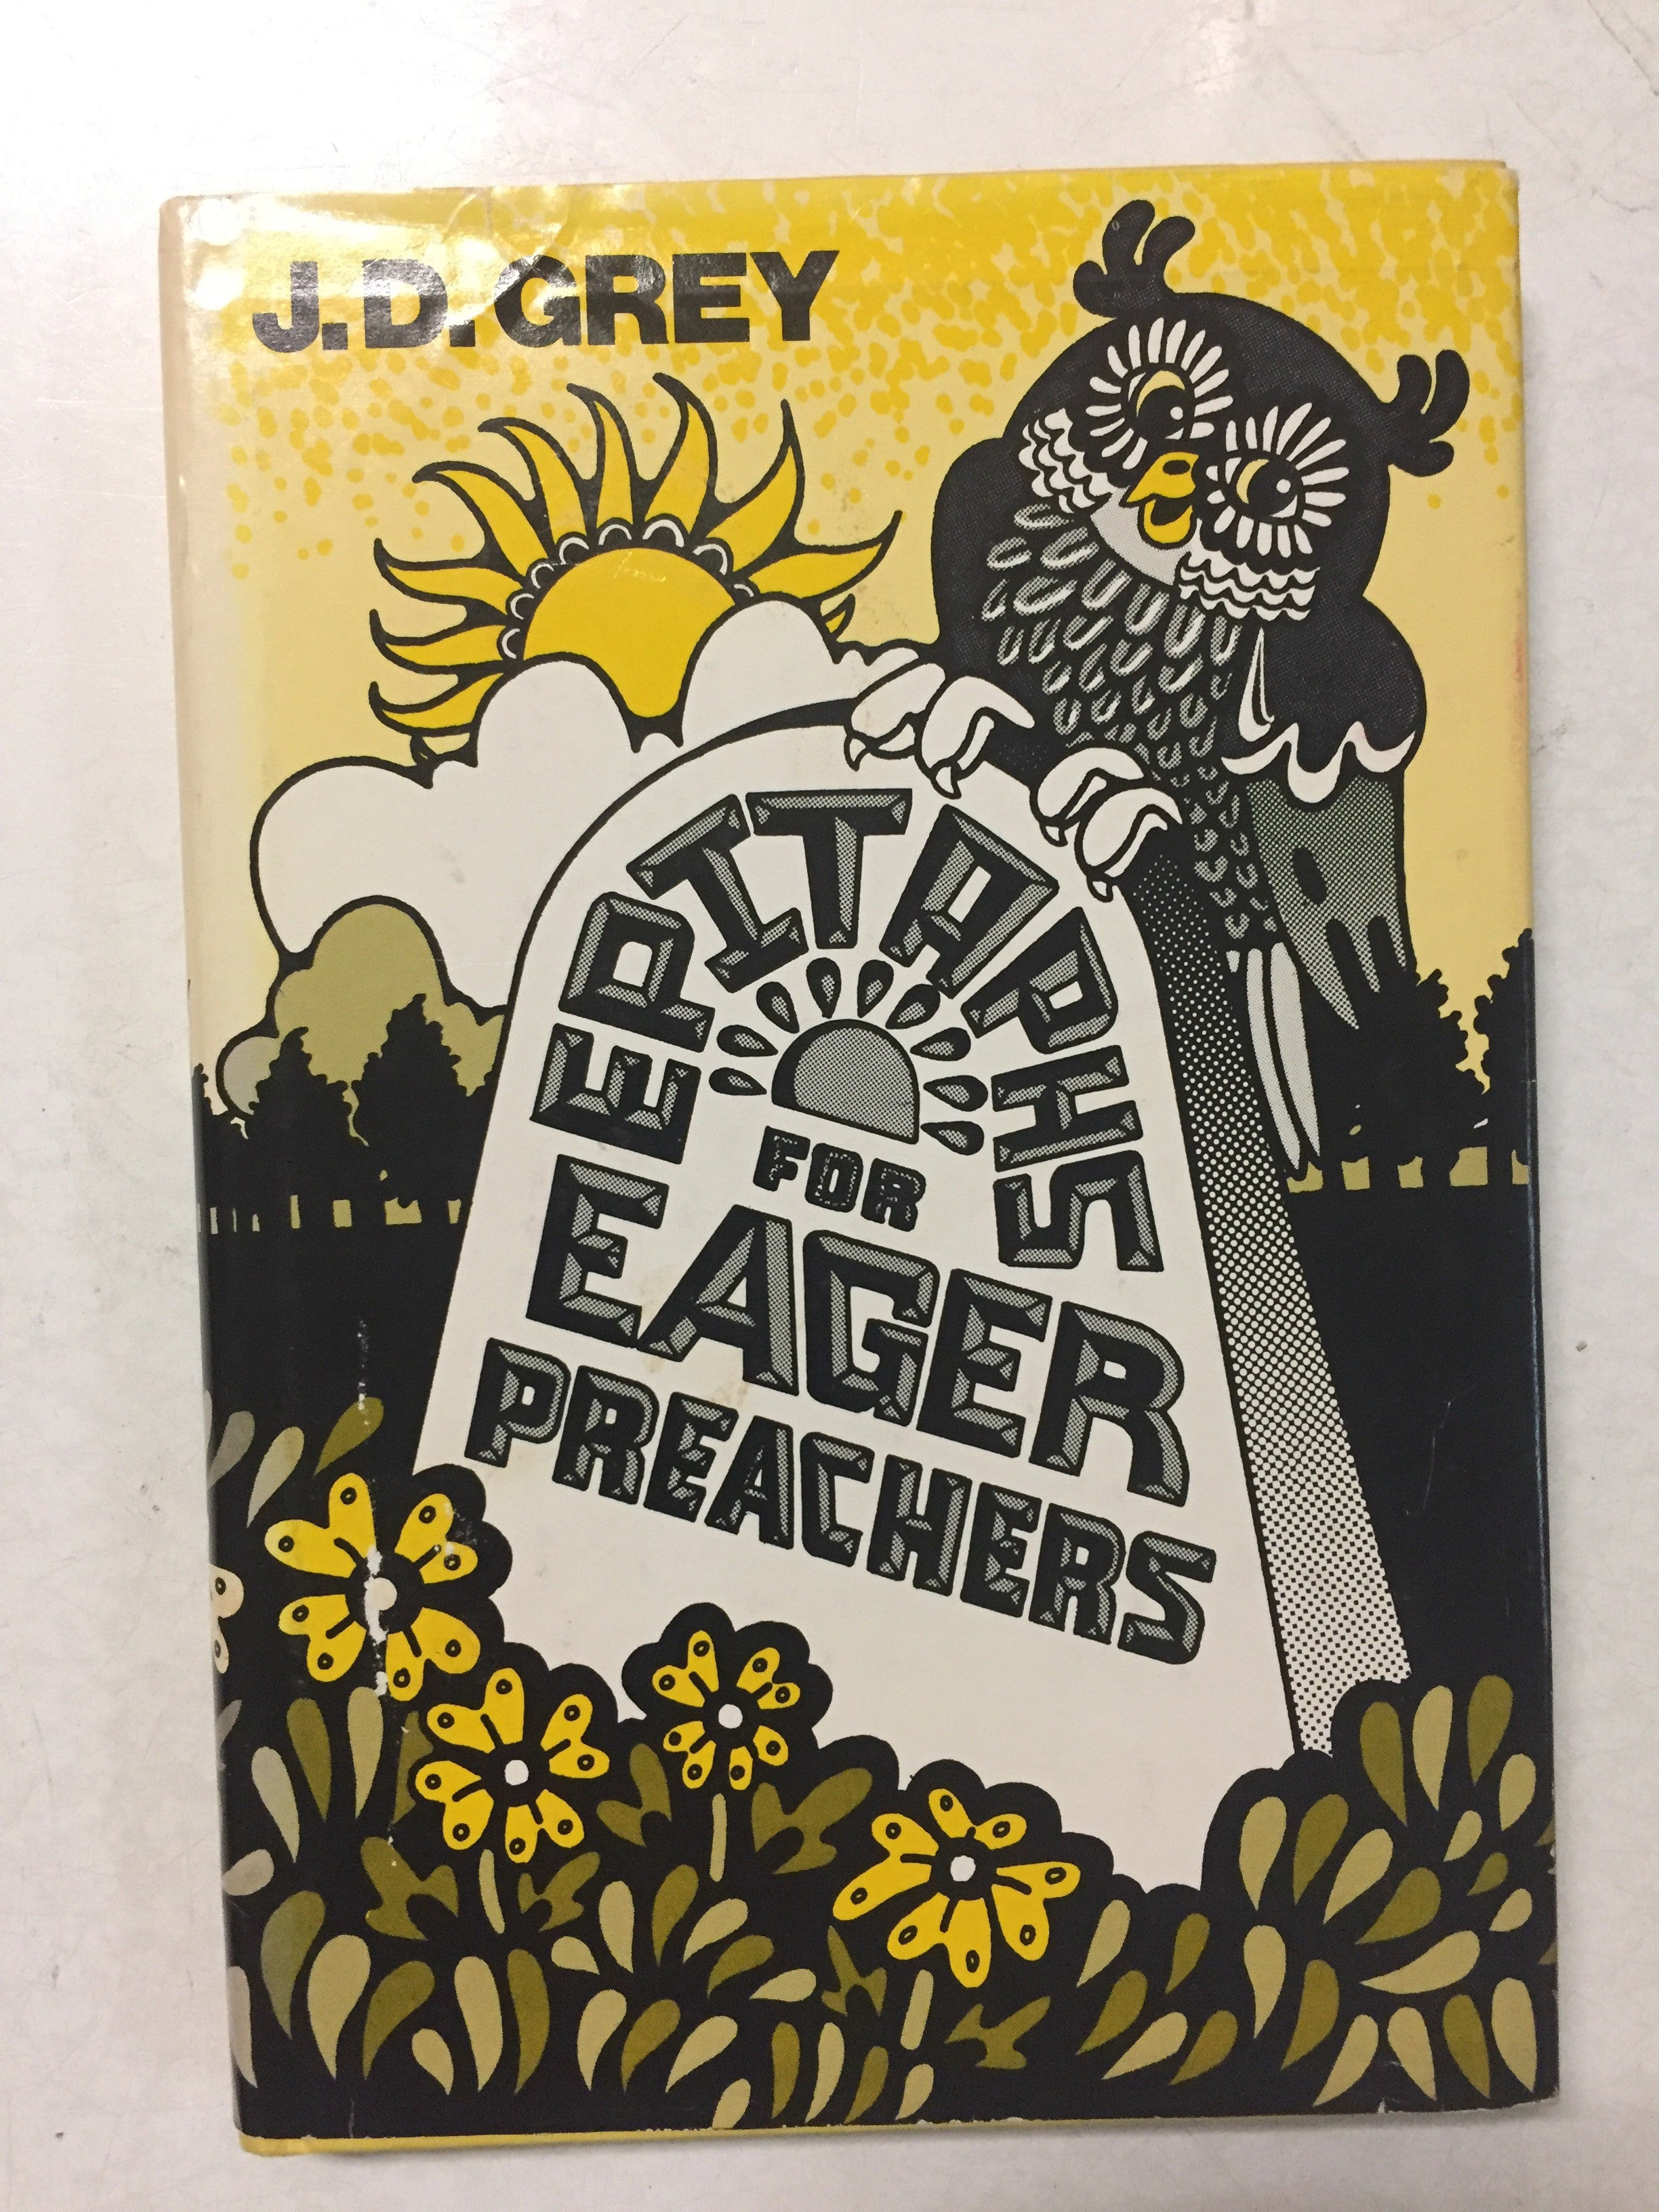 Epitaphs For Eager Preachers - Slick Cat Books